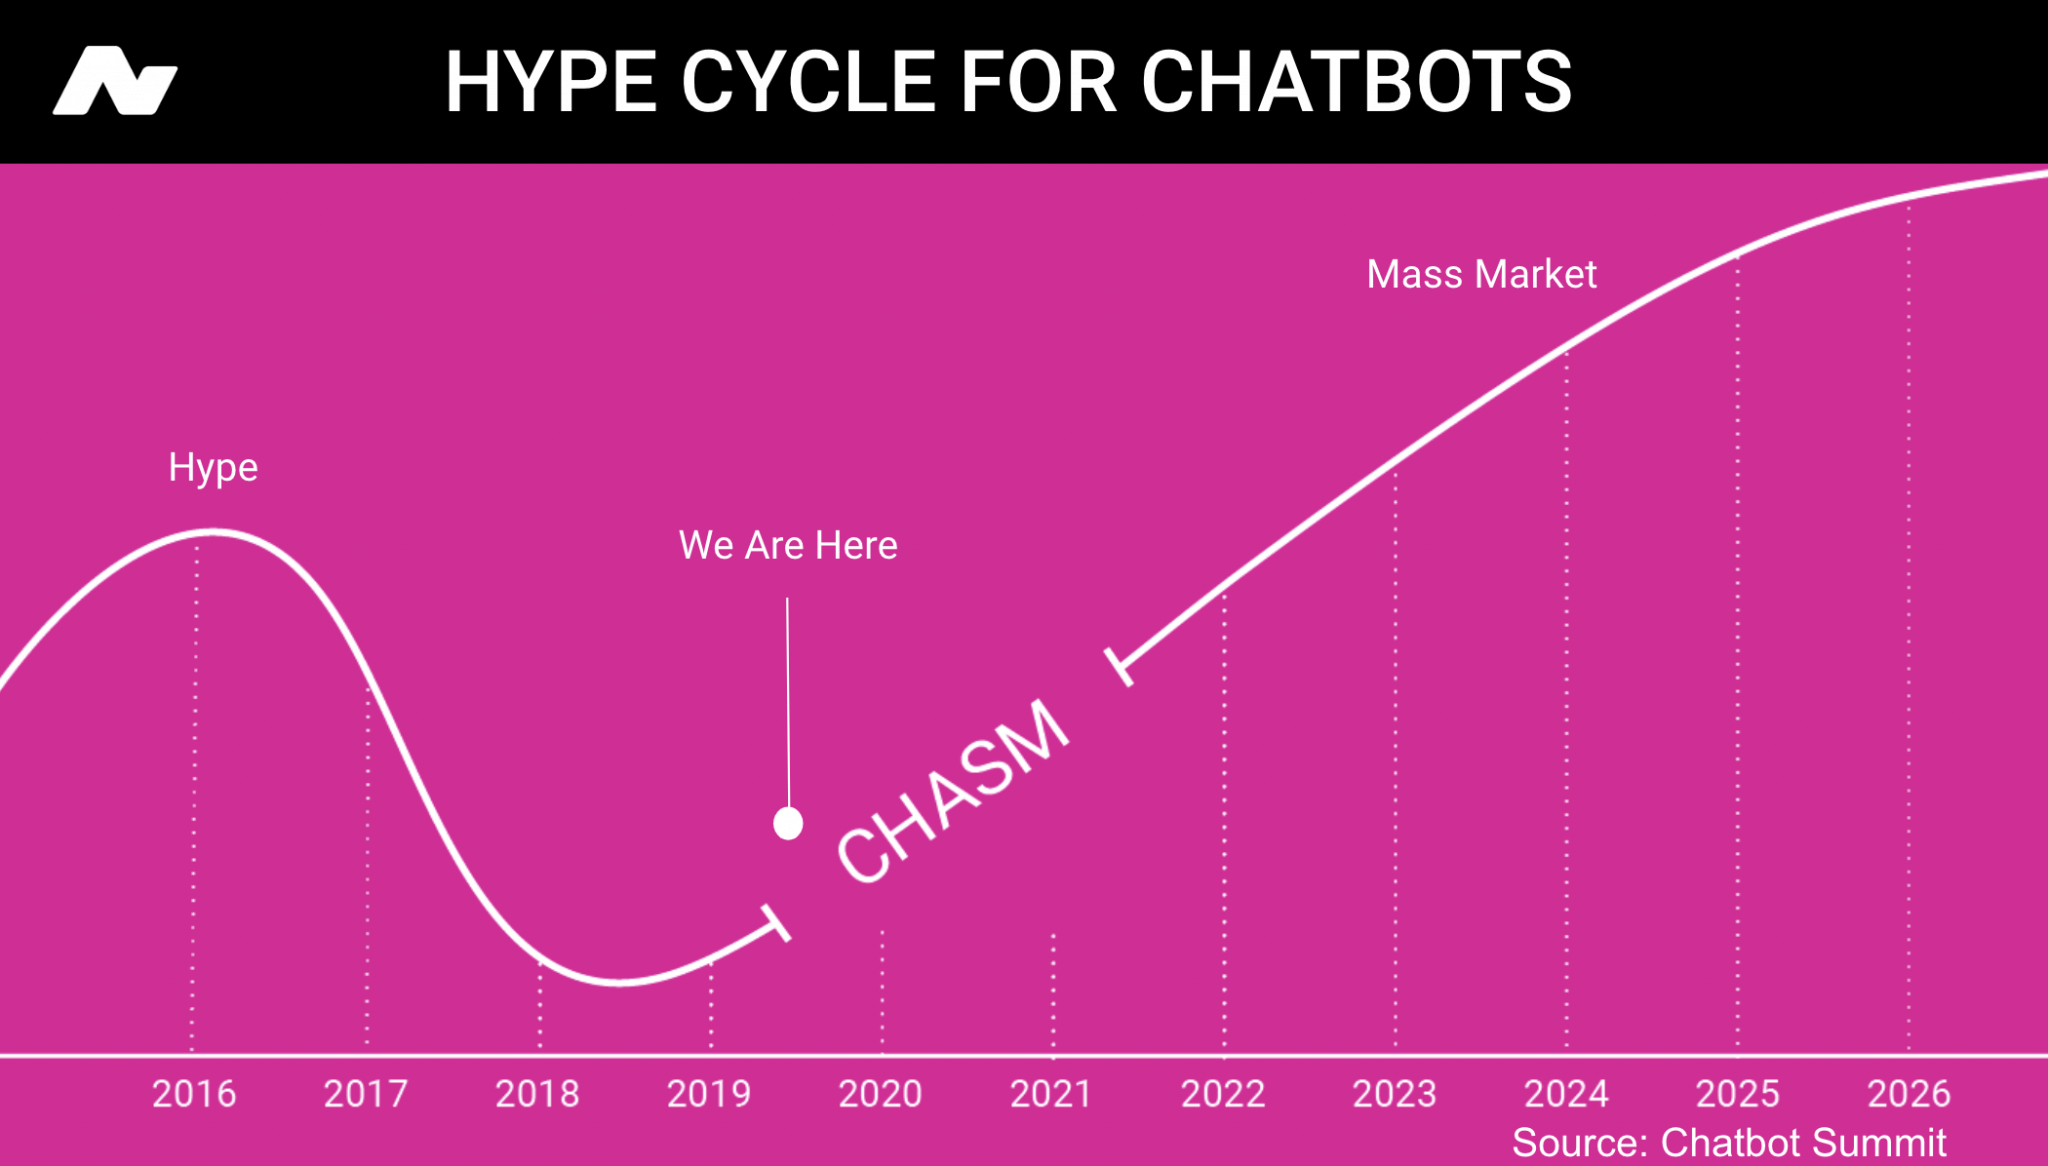 Hype cycle for chatbots